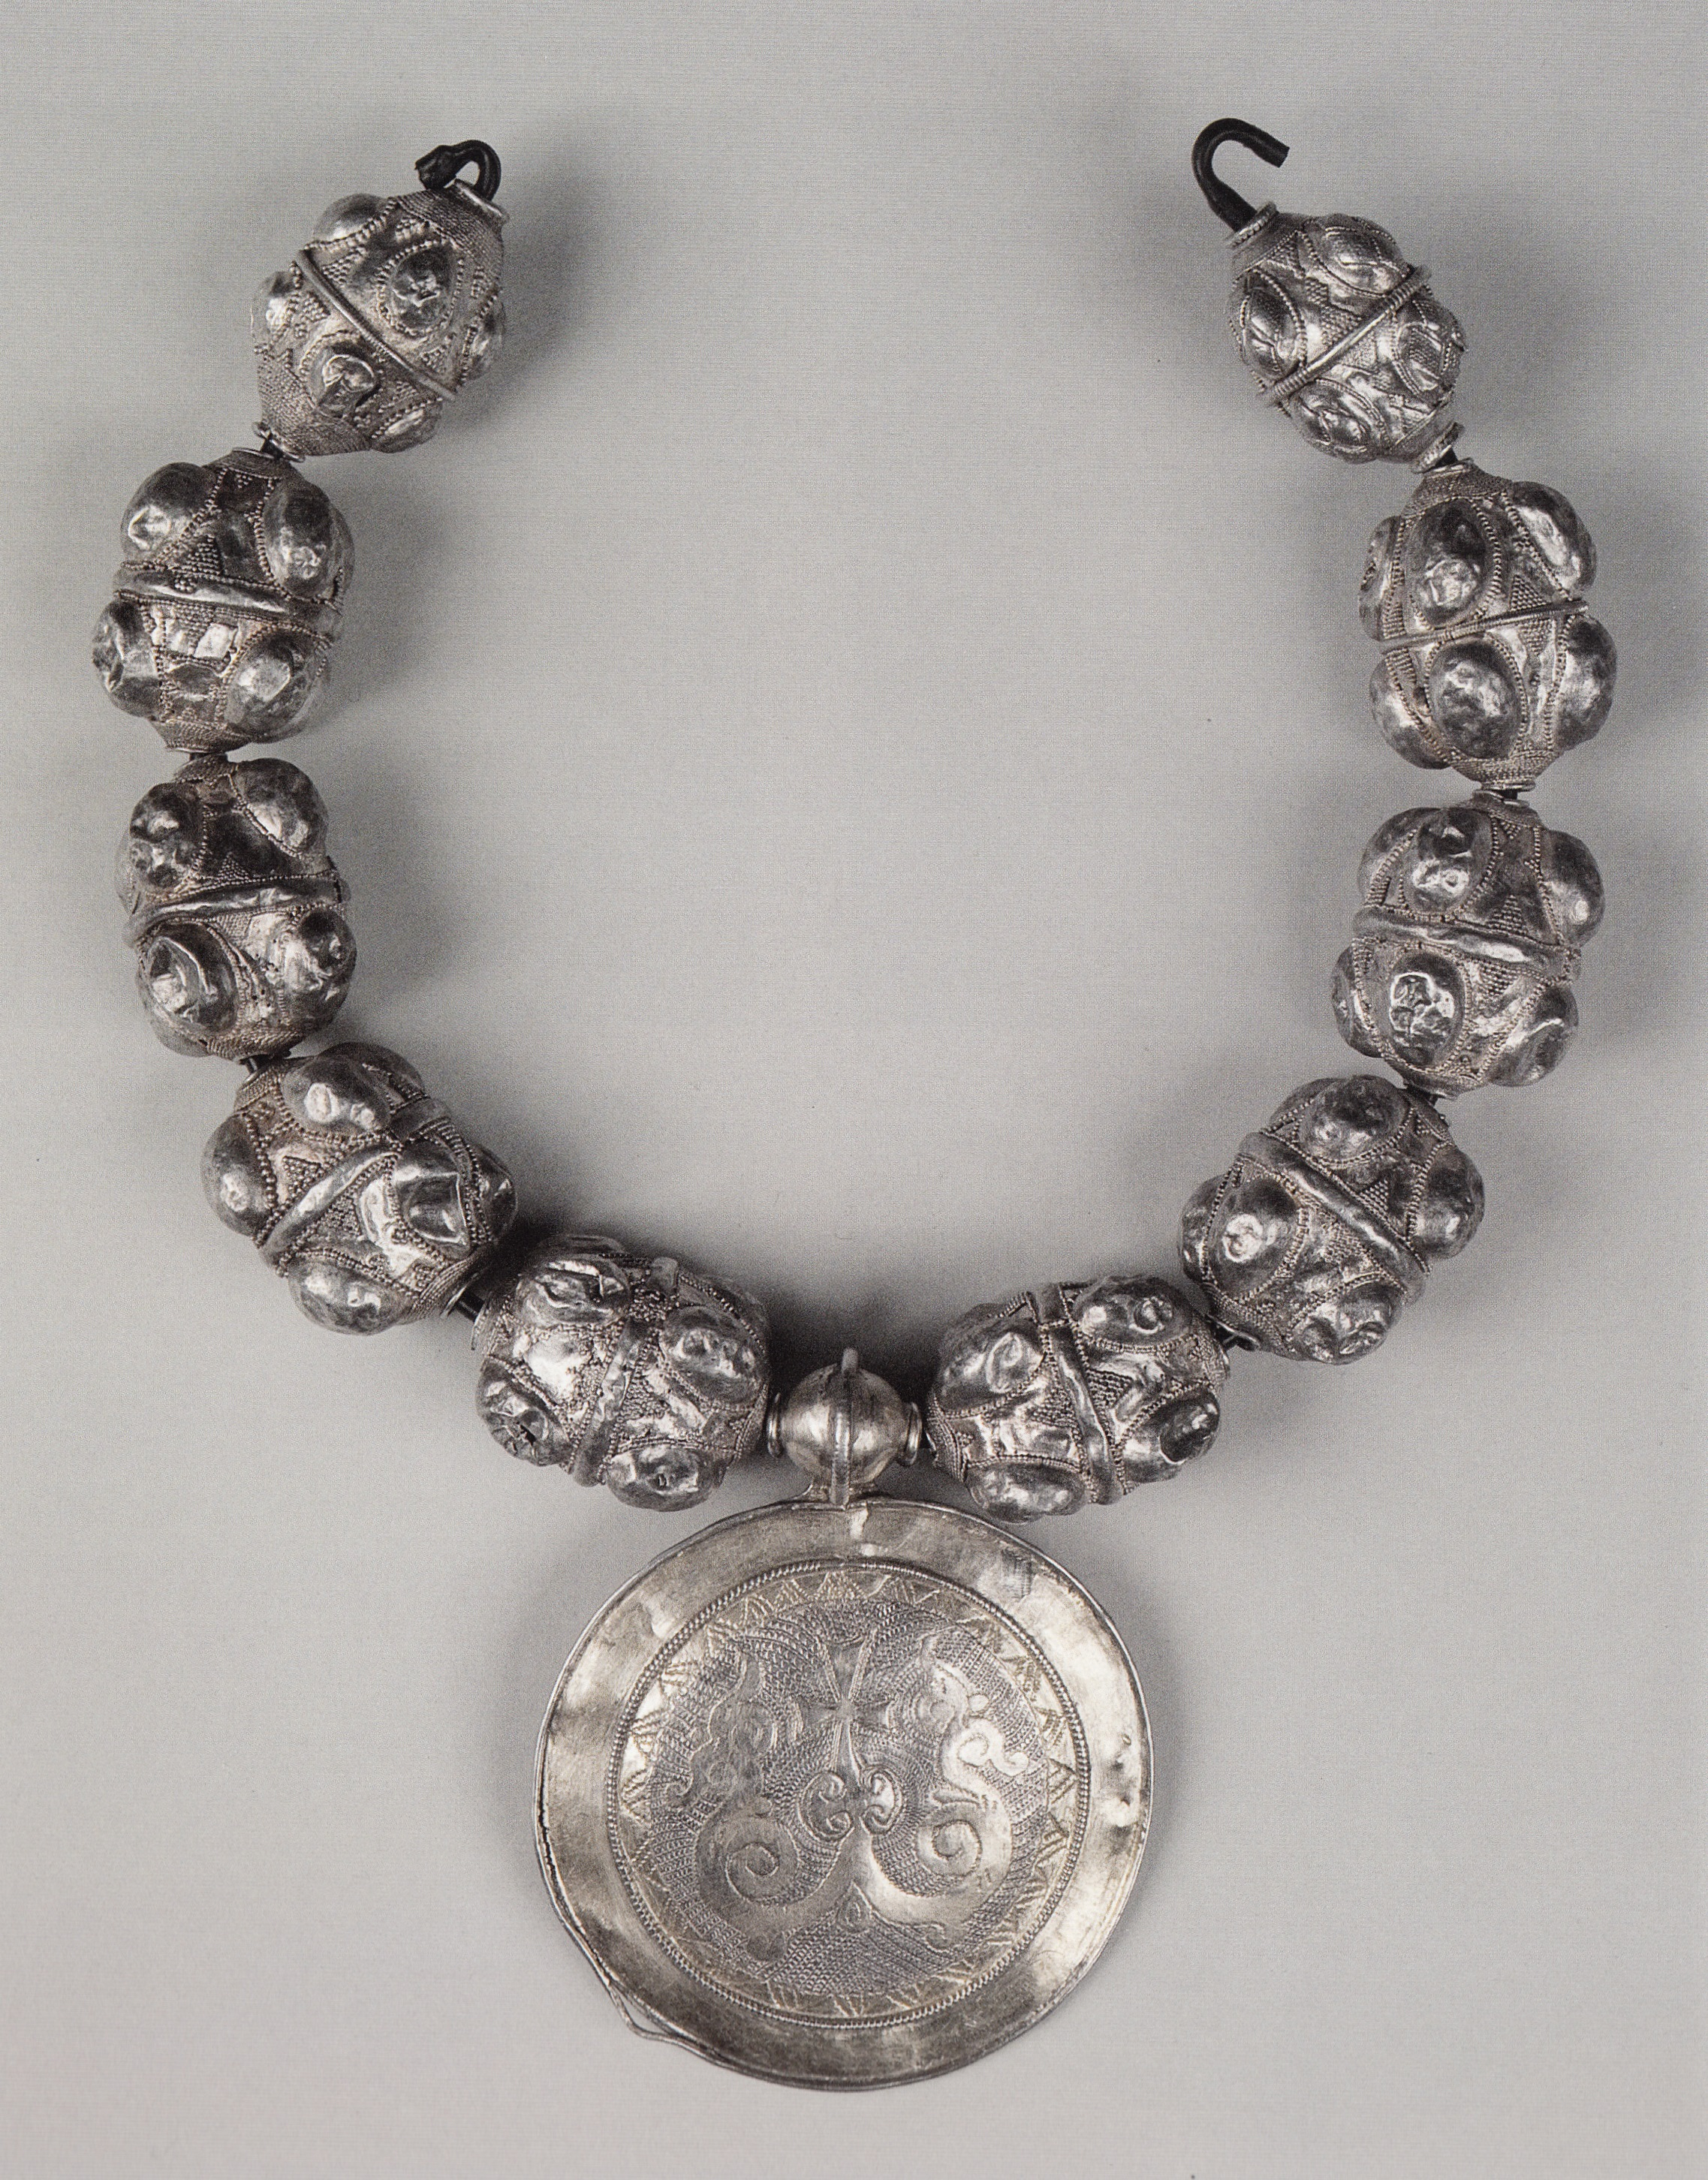 Barmy. Bead necklace with medallion depicting a cross. End of XIIth – first fart XIII century. Rus'. Silver; soldering, skan', zern', mounting, soldering, gilting, engraving.